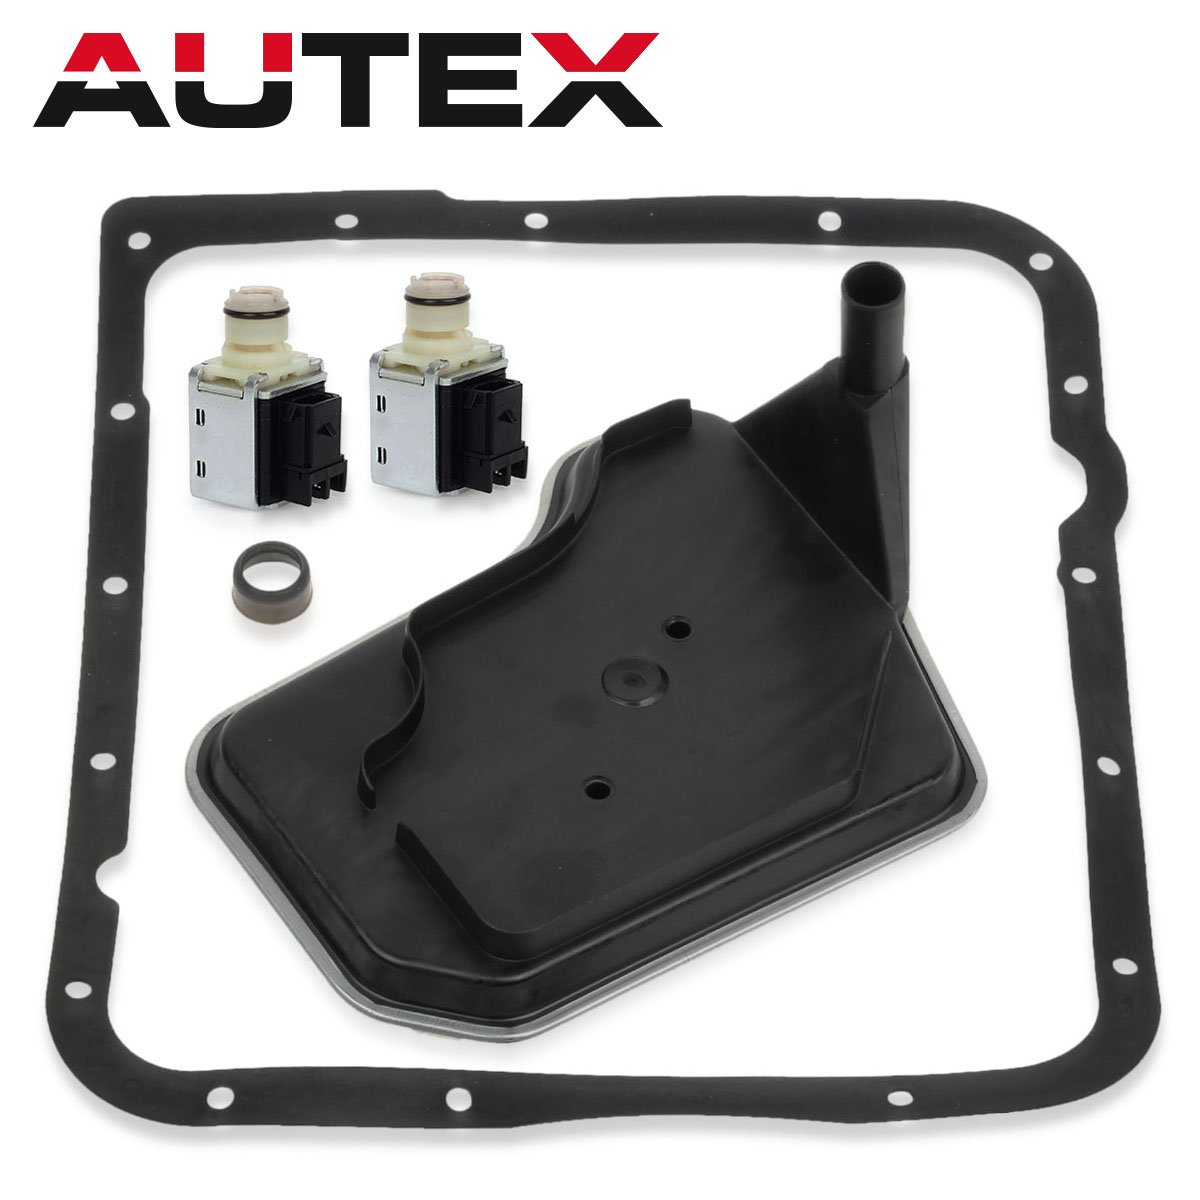 AUTEX 2PCS 4L60E Transmission Shift Solenoid Valve with Filter (DEEP PAN) Gasket Kit Set A&B Fits For 04 05 06 07 Buick Rainier/Chevy Astro/Chevy Blazer/98-02 Chevy Camaro/13 Chevrolet Silverado 1500 4L60E 4L60-E 4L65E 4L65-E 4L70E